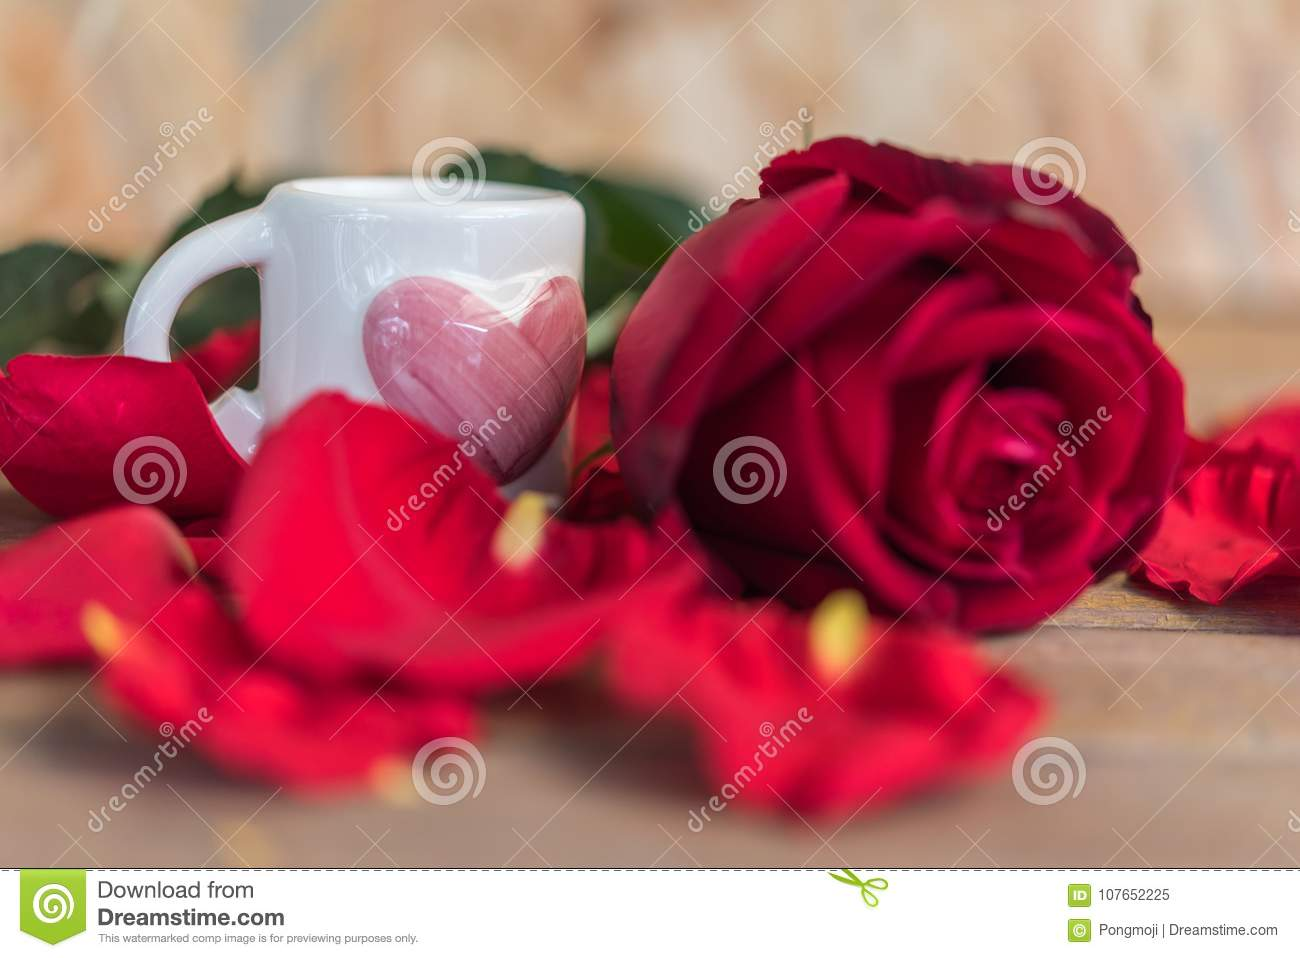 Red rose flower on wooden floor in valentines day stock image red rose flower nature beautiful flowers from the garden and petal red rose flower and white cup pink heart shape on wooden floor with copy space in izmirmasajfo